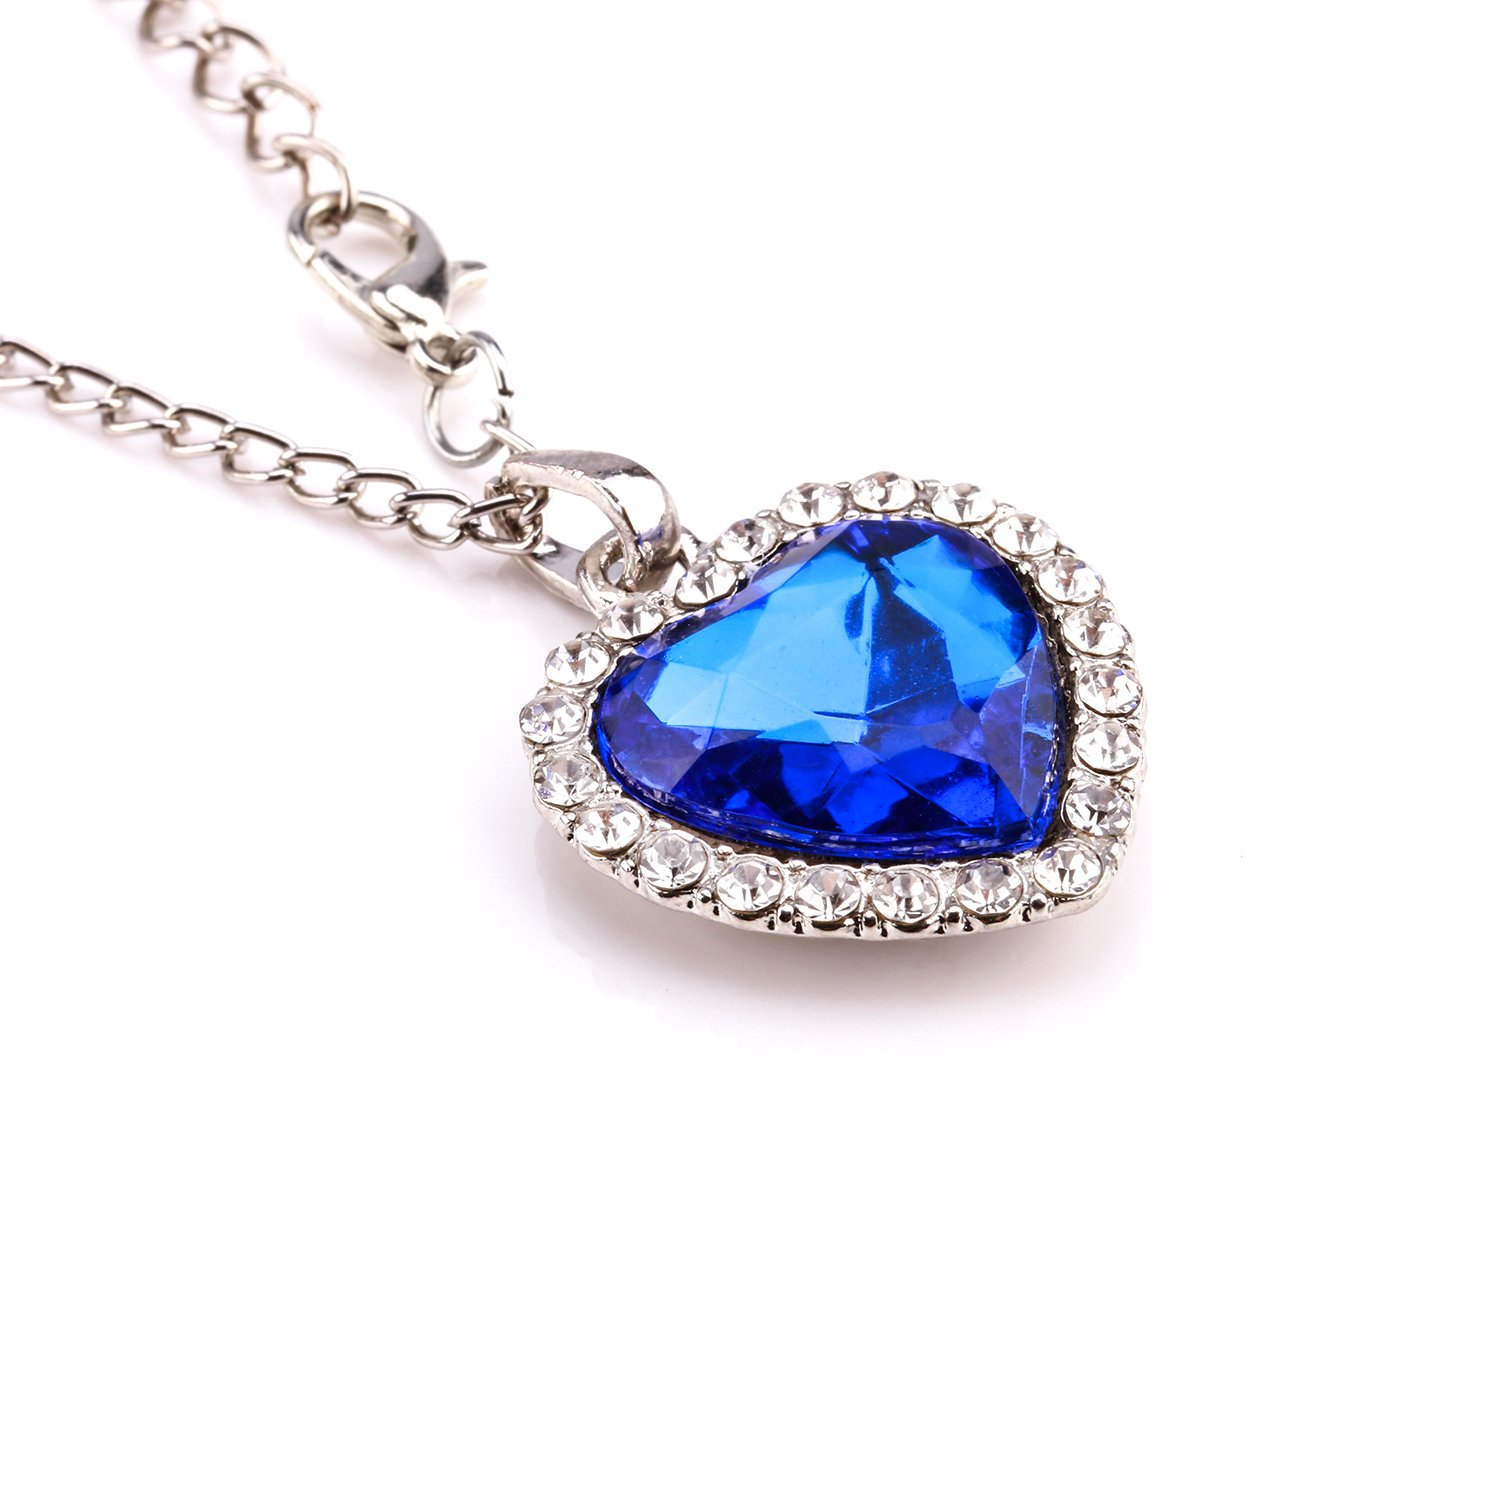 ROSE Jewellery Similar with Titanic Heart of the ocean (blue)